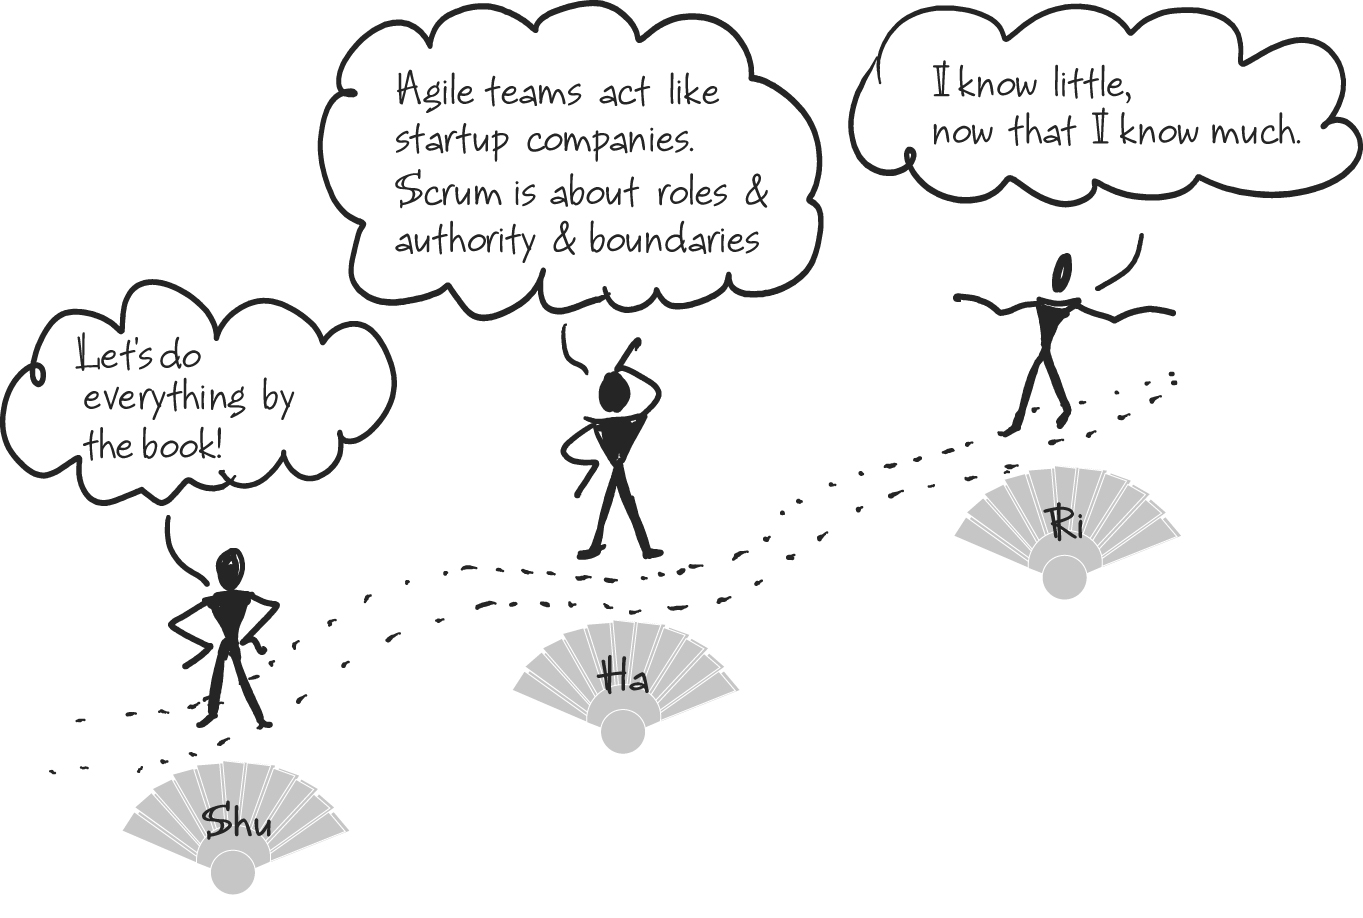 Dan Mezick's Agile Coach Journey from the Coaching Agile Teams book.                                   Illustration copyright 2010 Pearson Education